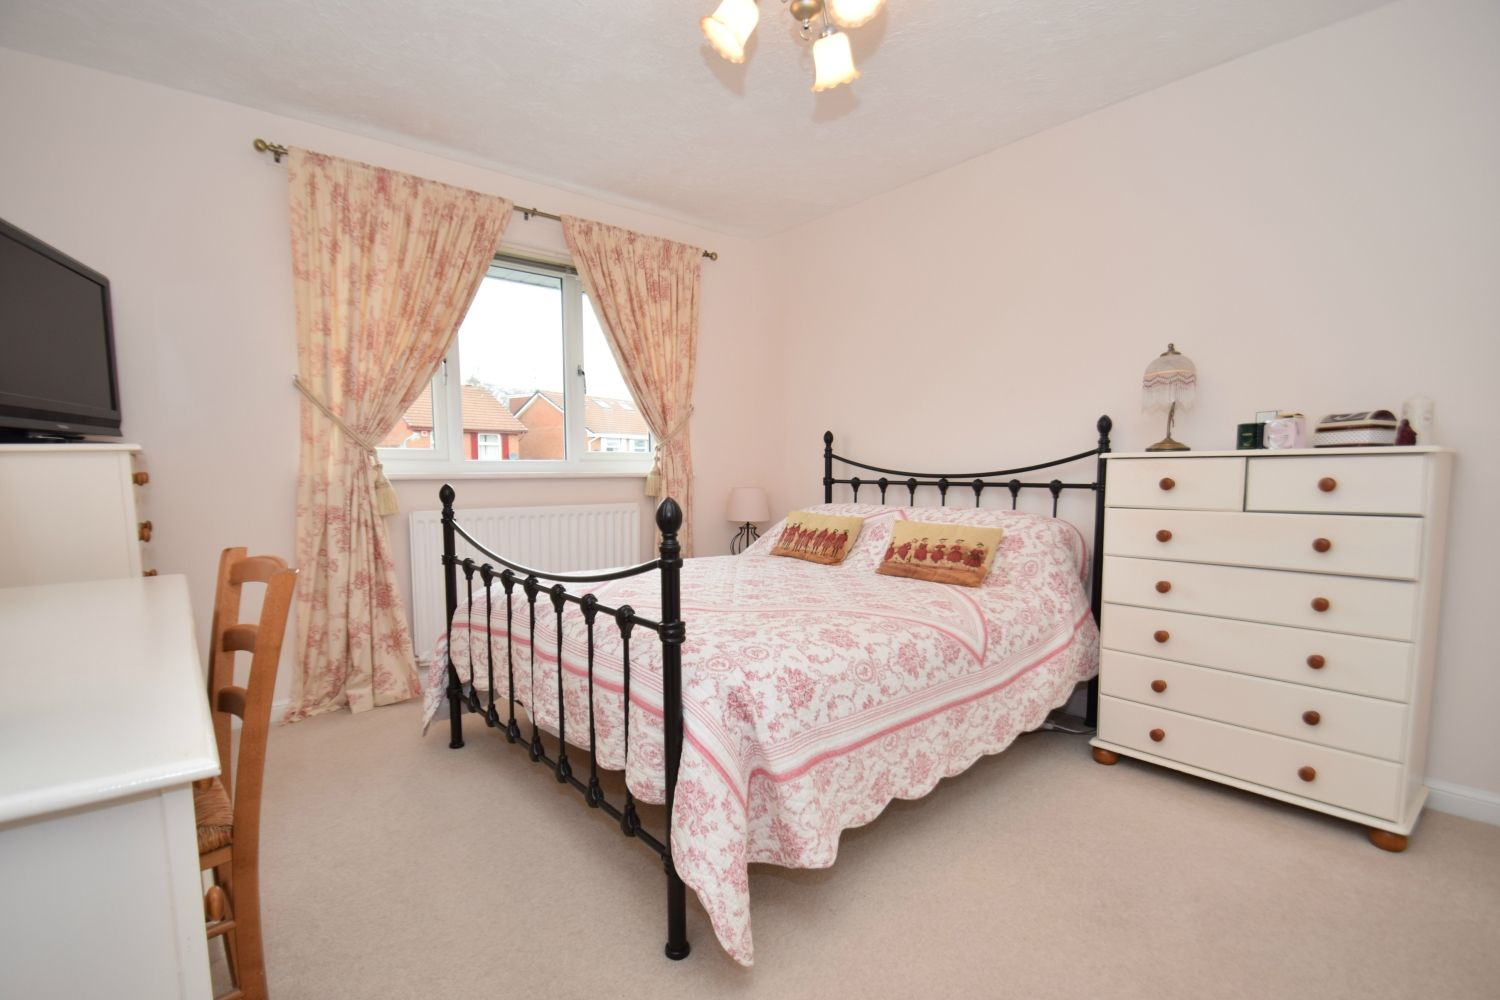 3 bed detached for sale in Foxes Close, Blackwell, B60 10